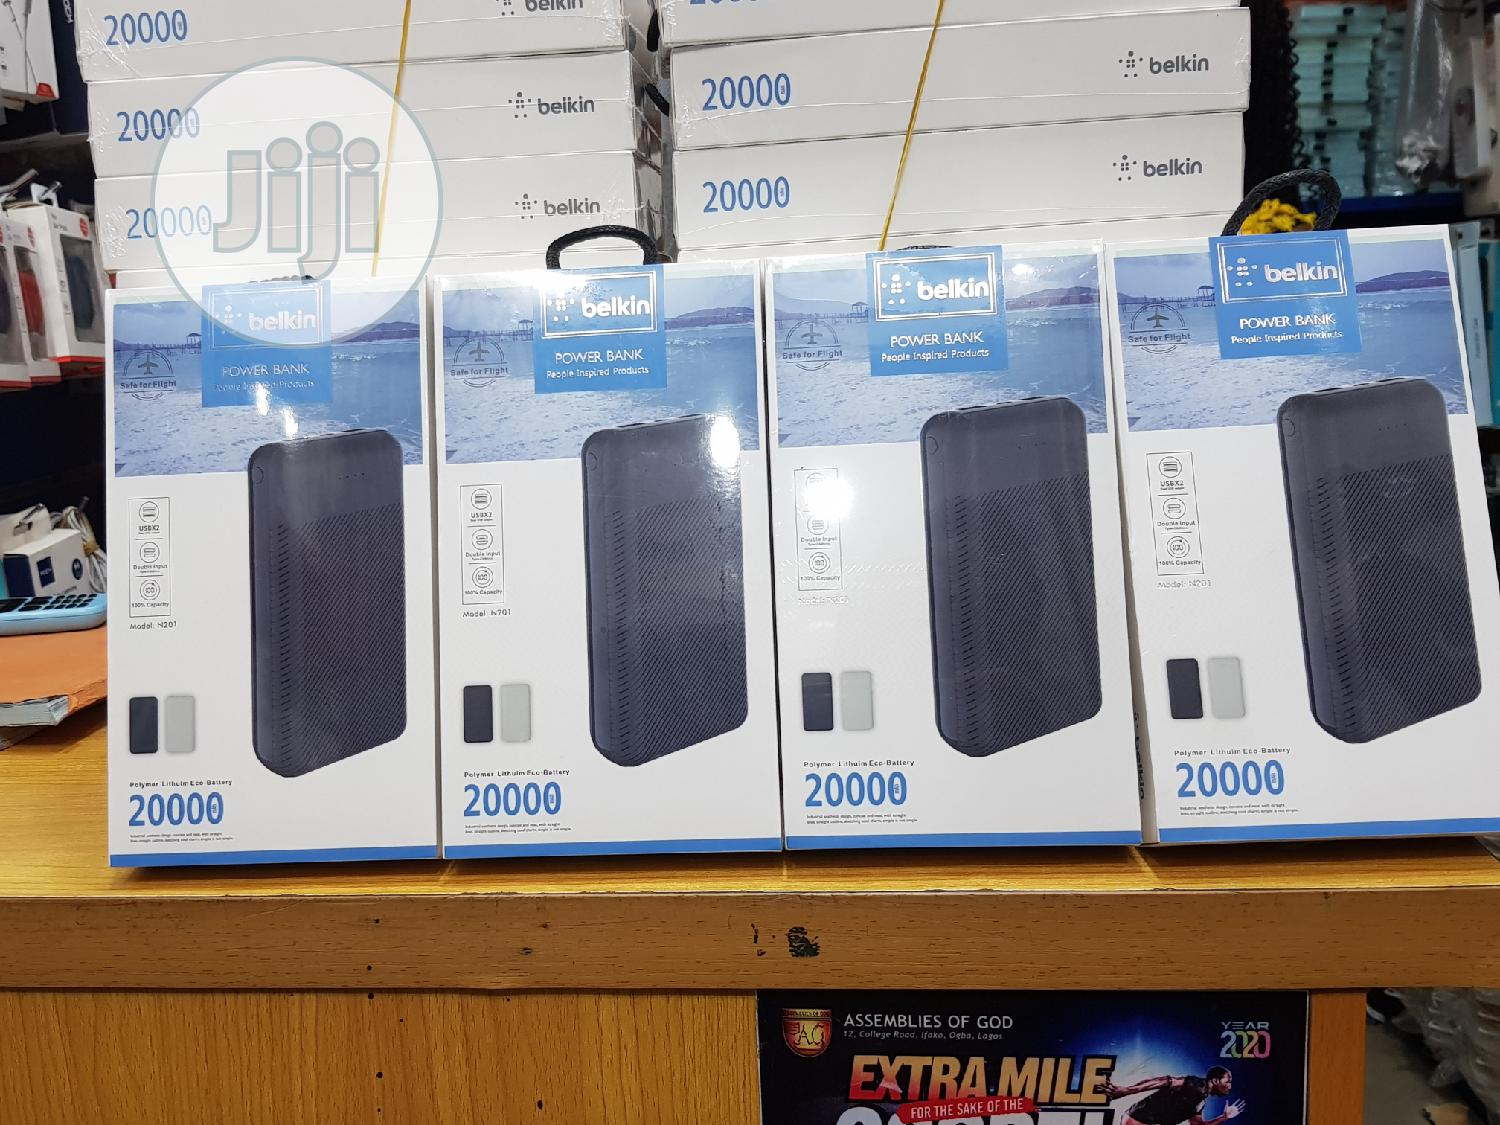 Belkin Power Bank 20,000mah | Accessories for Mobile Phones & Tablets for sale in Ikeja, Lagos State, Nigeria